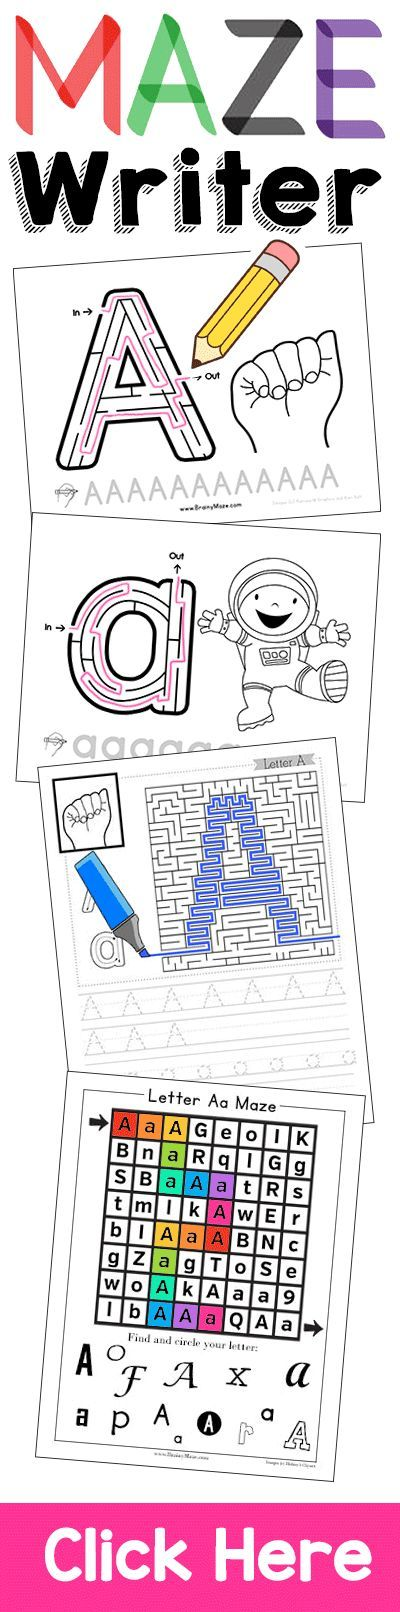 Maze Writer Handwriting Program for Kids.  Handwriting has never been this fun!  Each handwriting page includes a fun maze and activity for children solve. Children build fine motor skills necessary for handwriting all while having fun!  http://thecraftyclassroom.com/2016/11/29/maze-writer-handwriting-program/